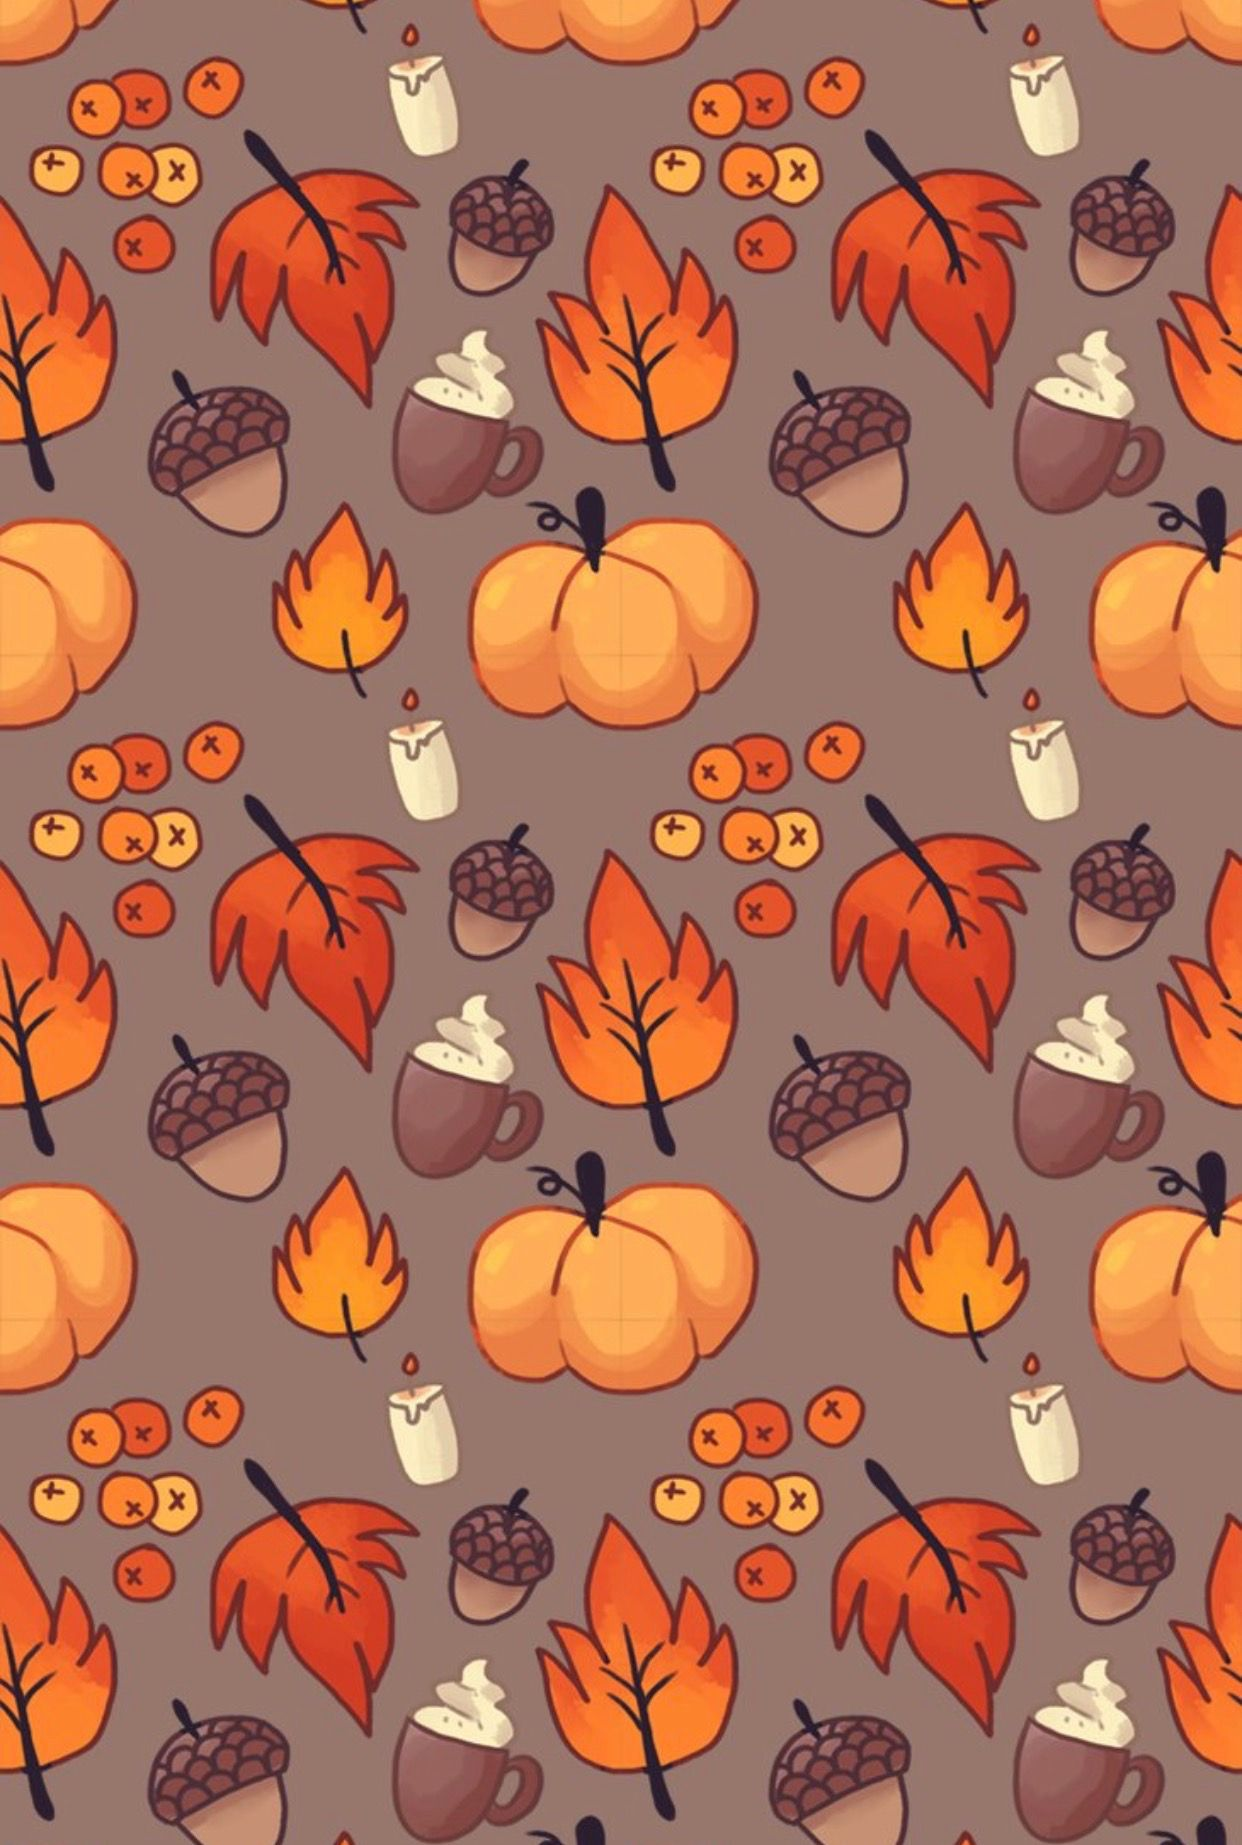 Pin by Erin Smith on iPhone Wallpaper Fall wallpaper